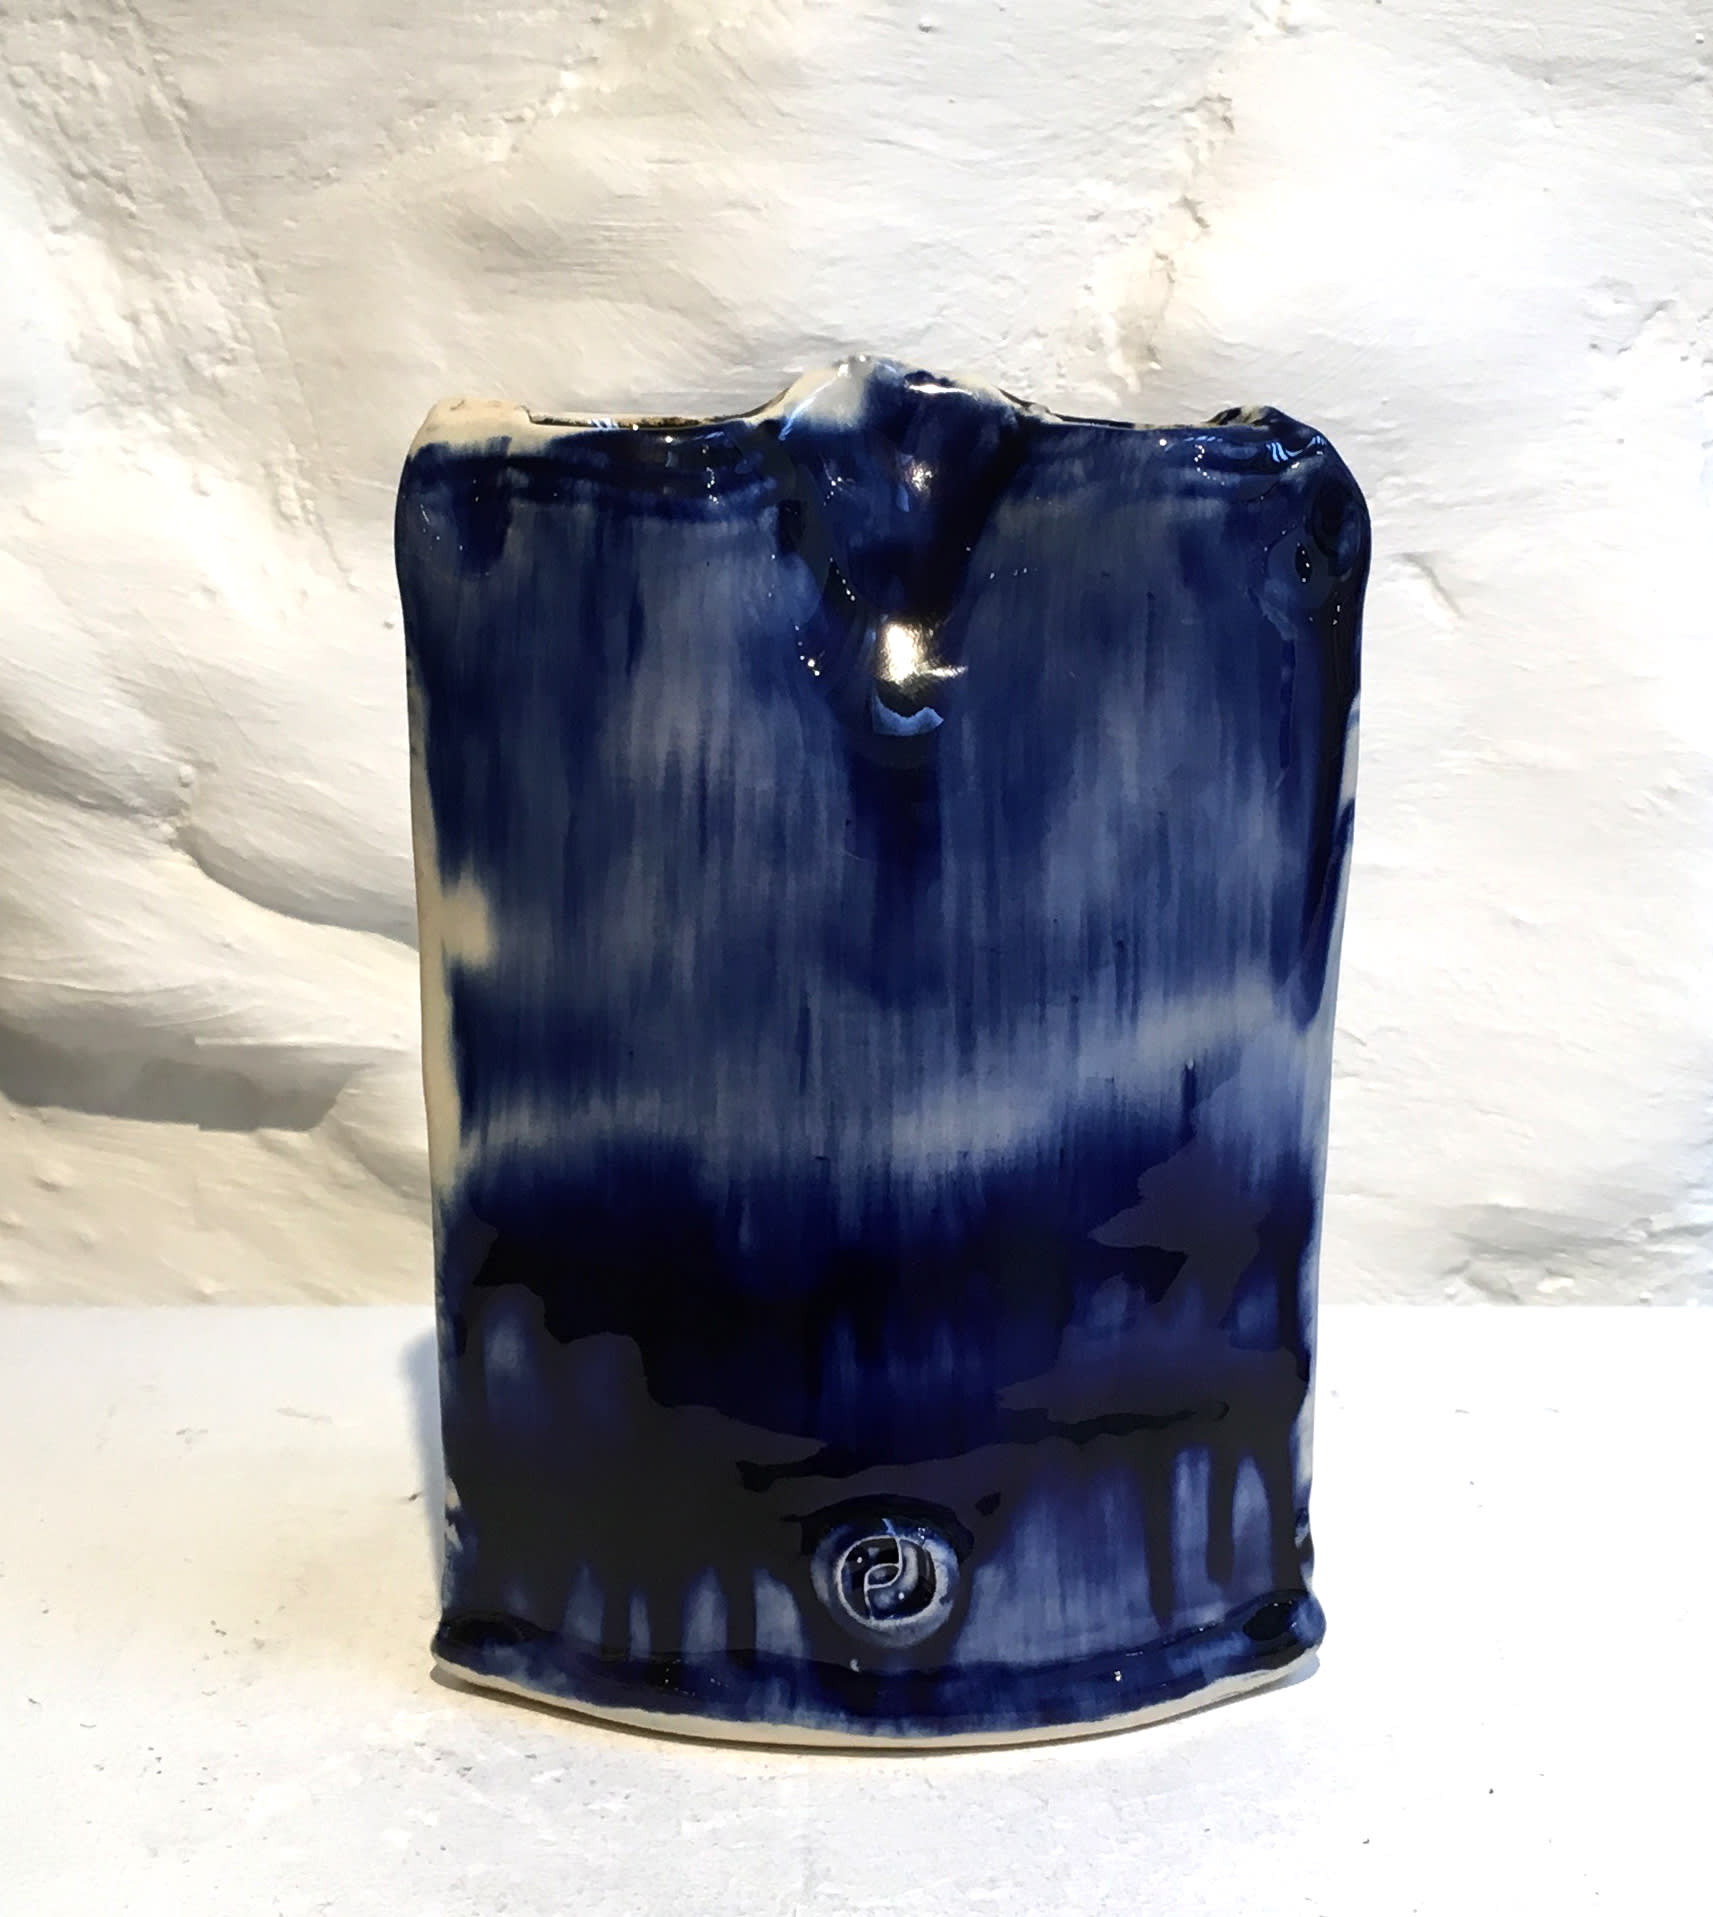 """<span class=""""link fancybox-details-link""""><a href=""""/artists/100-john-pollex/works/6039-john-pollex-ikebana-slab-2018/"""">View Detail Page</a></span><div class=""""artist""""><strong>John Pollex</strong></div> b. 1941 <div class=""""title""""><em>Ikebana Slab</em>, 2018</div> <div class=""""signed_and_dated"""">impressed with the artist's seal mark 'JP'</div> <div class=""""medium"""">white earthenware decorated with coloured slips</div><div class=""""price"""">£90.00</div><div class=""""copyright_line"""">Copyright The Artist</div>"""